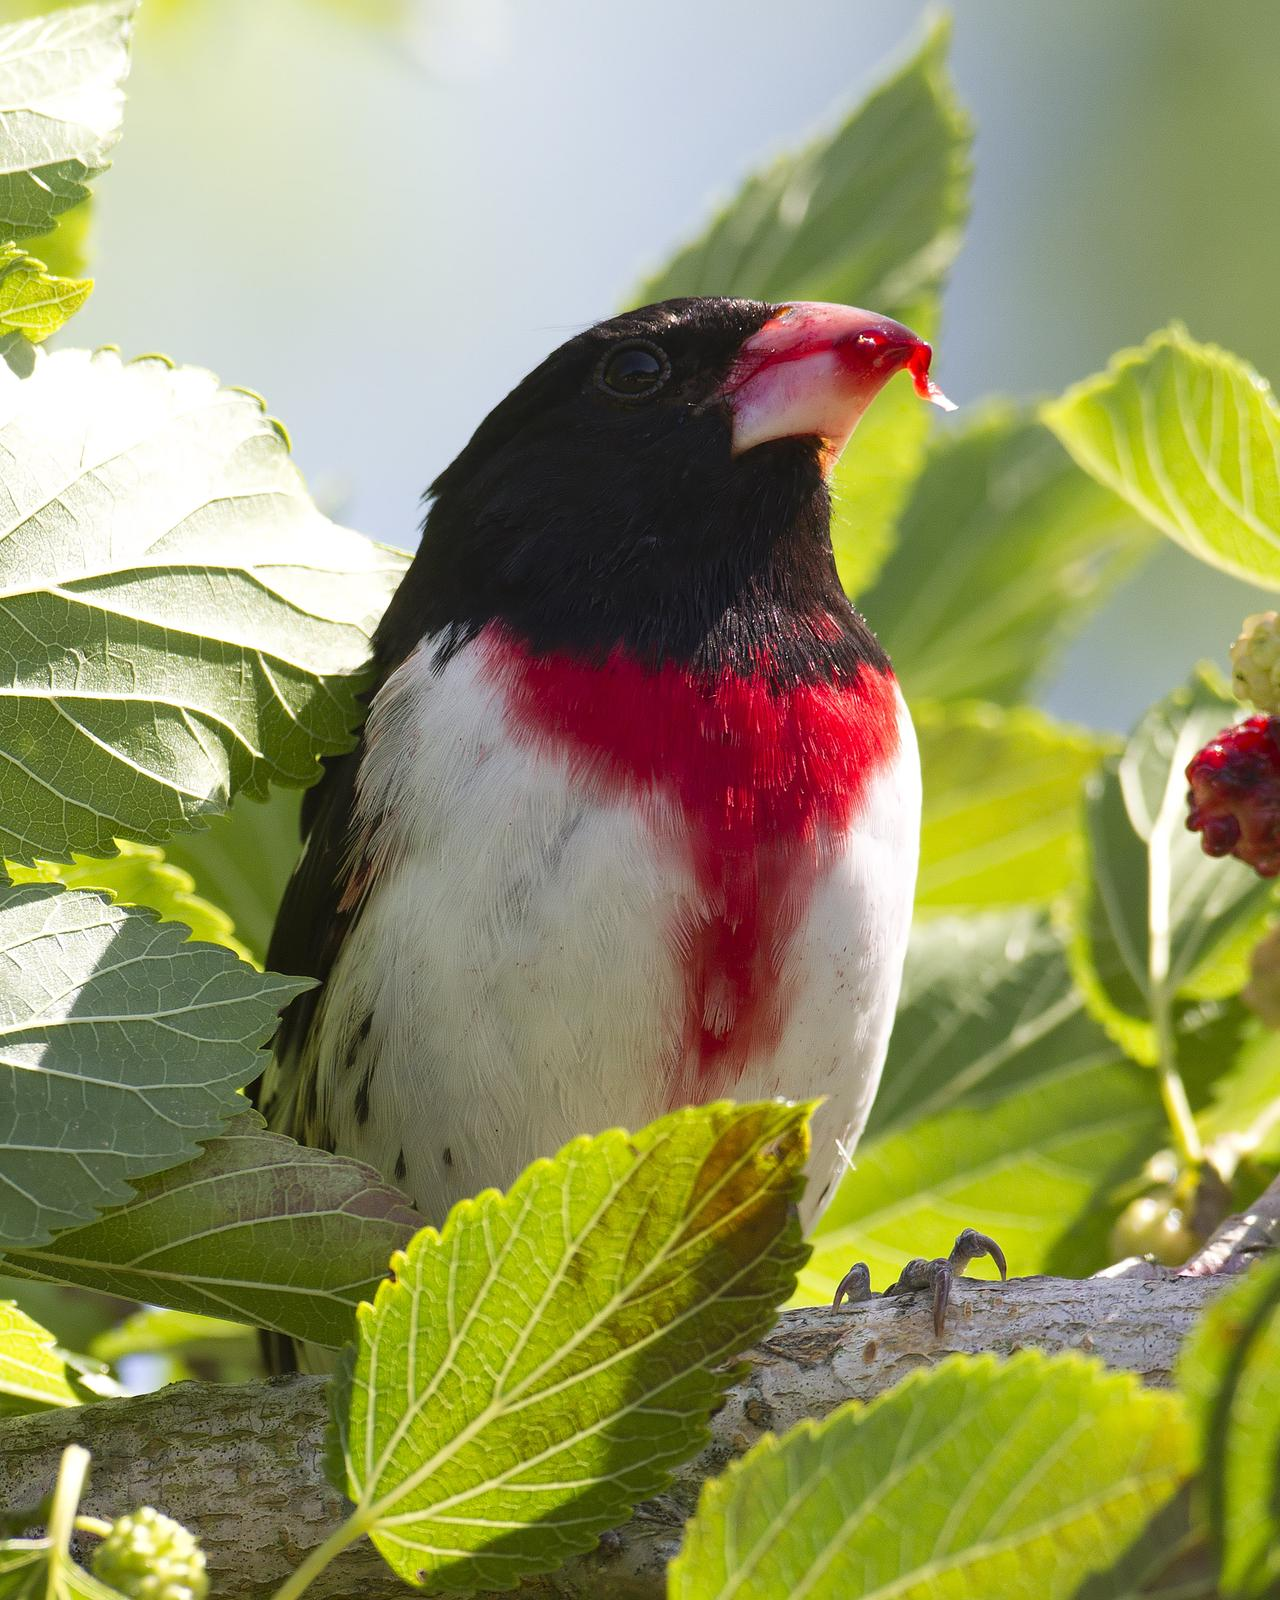 Rose-breasted Grosbeak Photo by Bill Adams